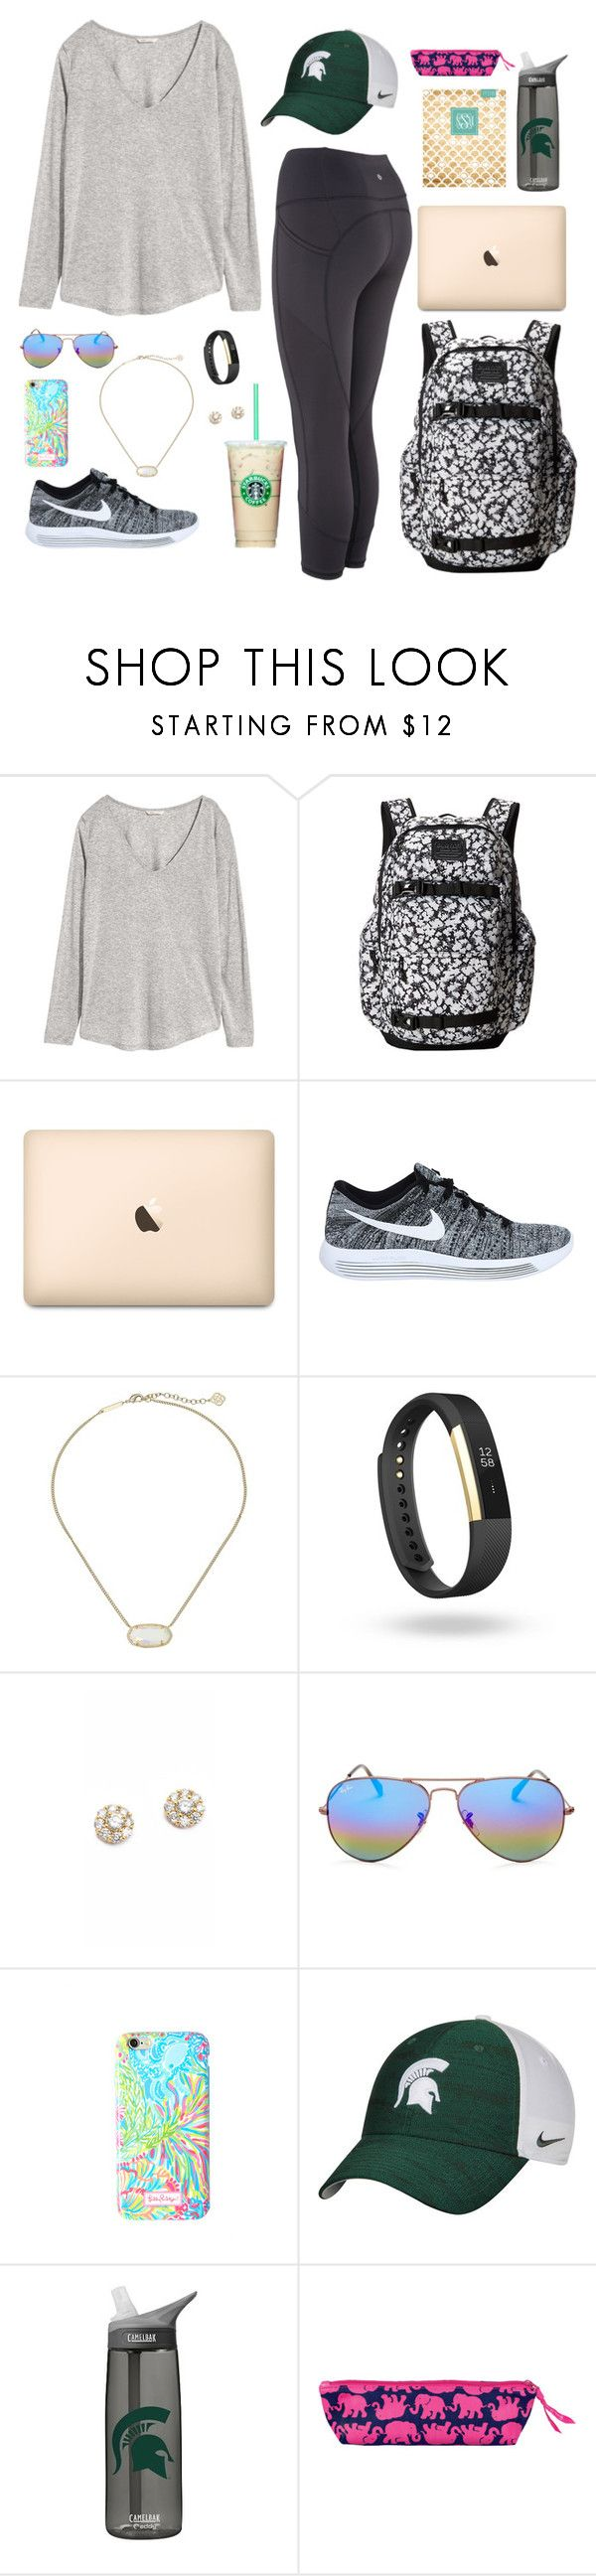 """""""Class Today"""" by jessica-taylor-722 ❤ liked on Polyvore featuring H&M, Burton, NIKE, Kendra Scott, Fitbit, Kate Spade, Ray-Ban and Lilly Pulitzer"""